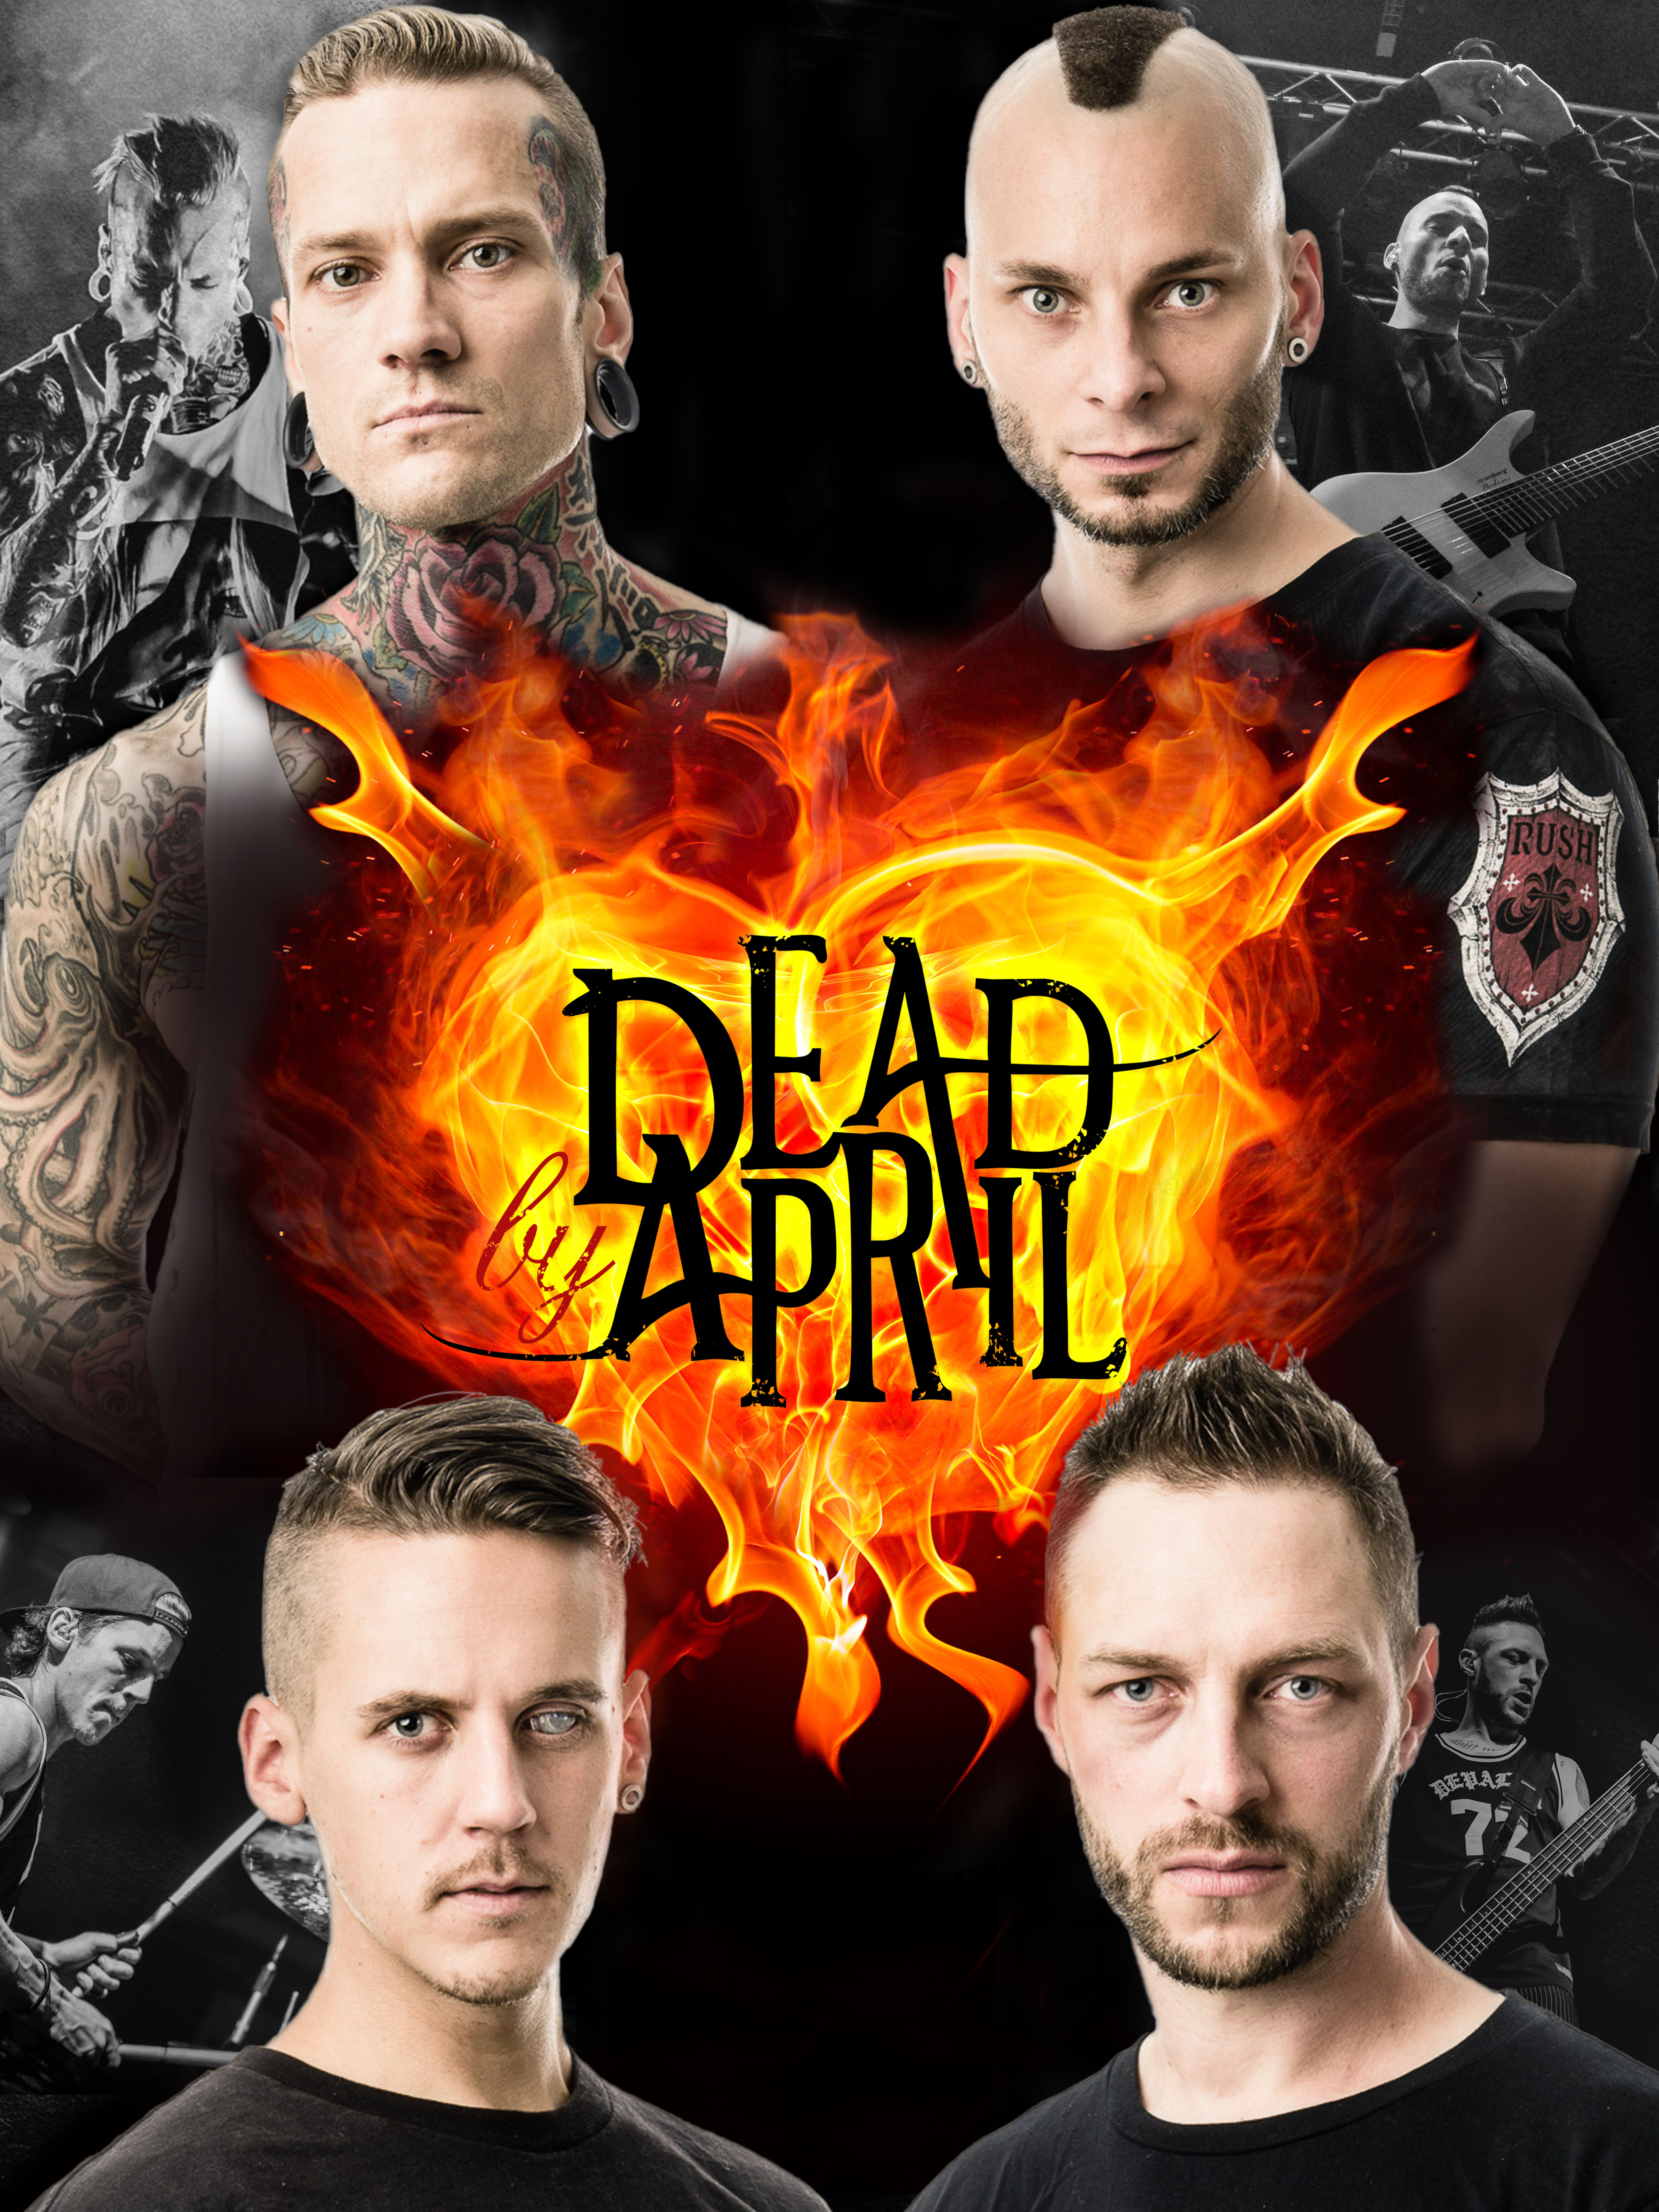 Dead By April Poster